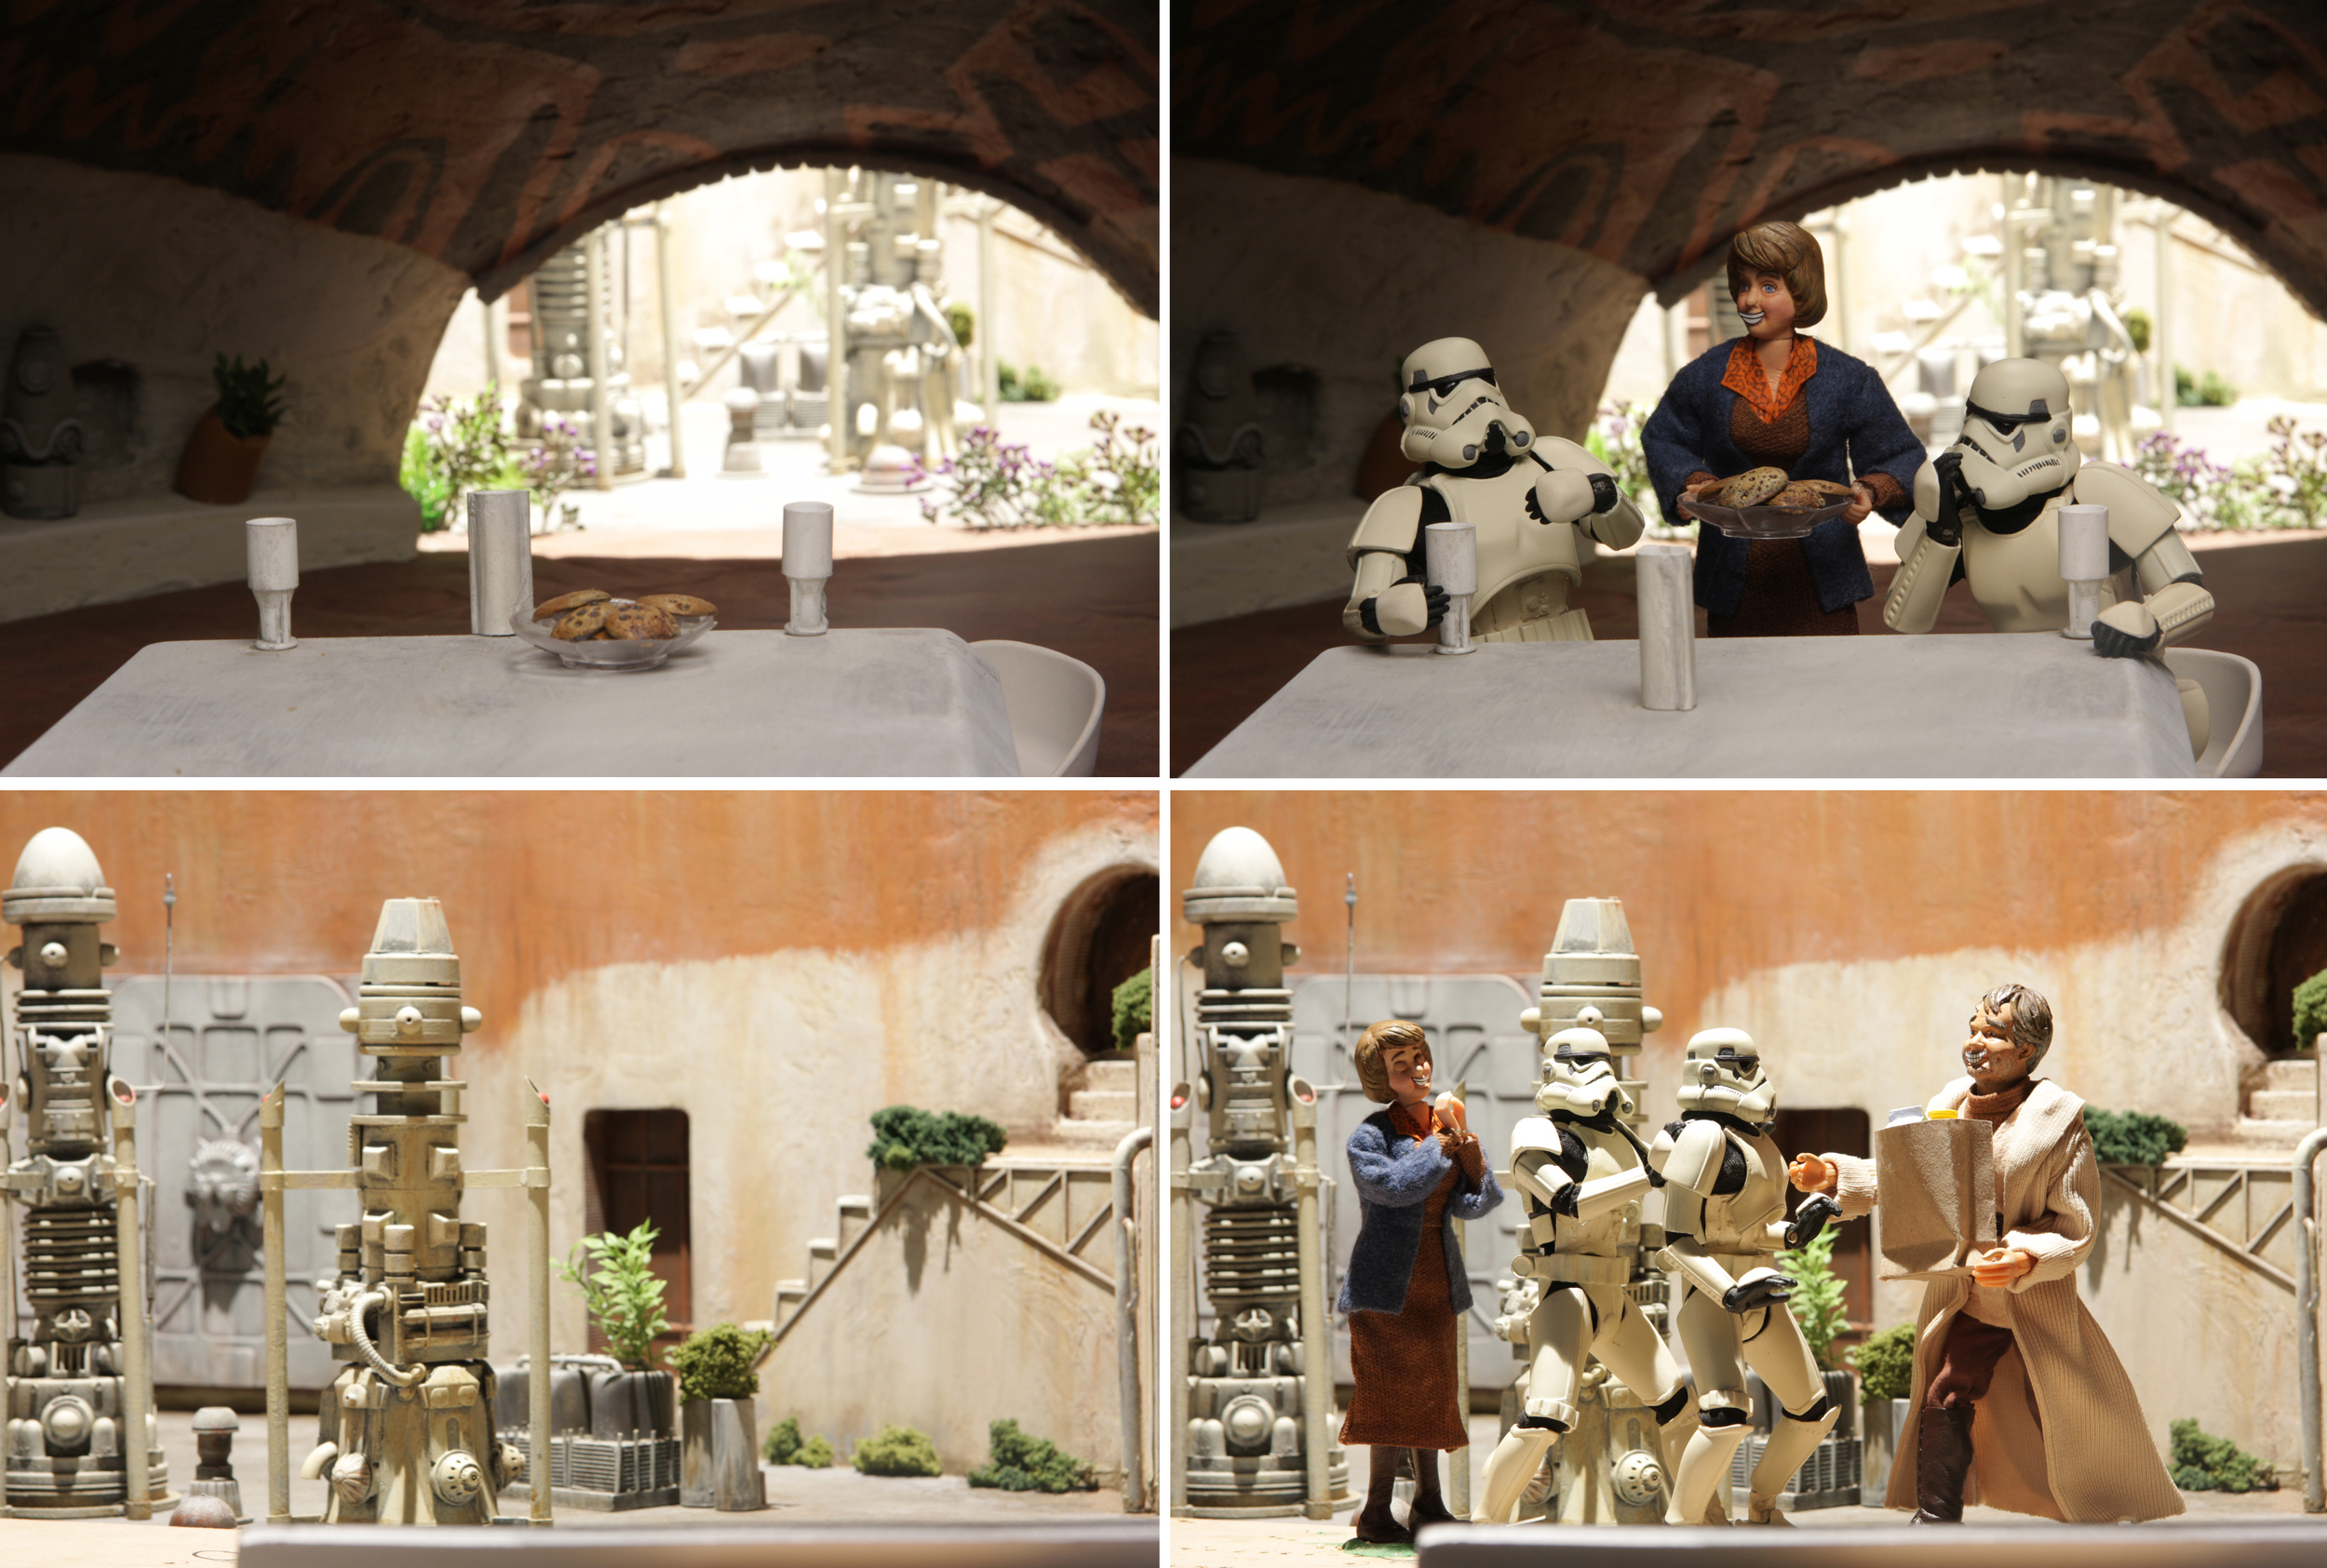 Robot Chicken Star Wars 3 Image 75.jpg